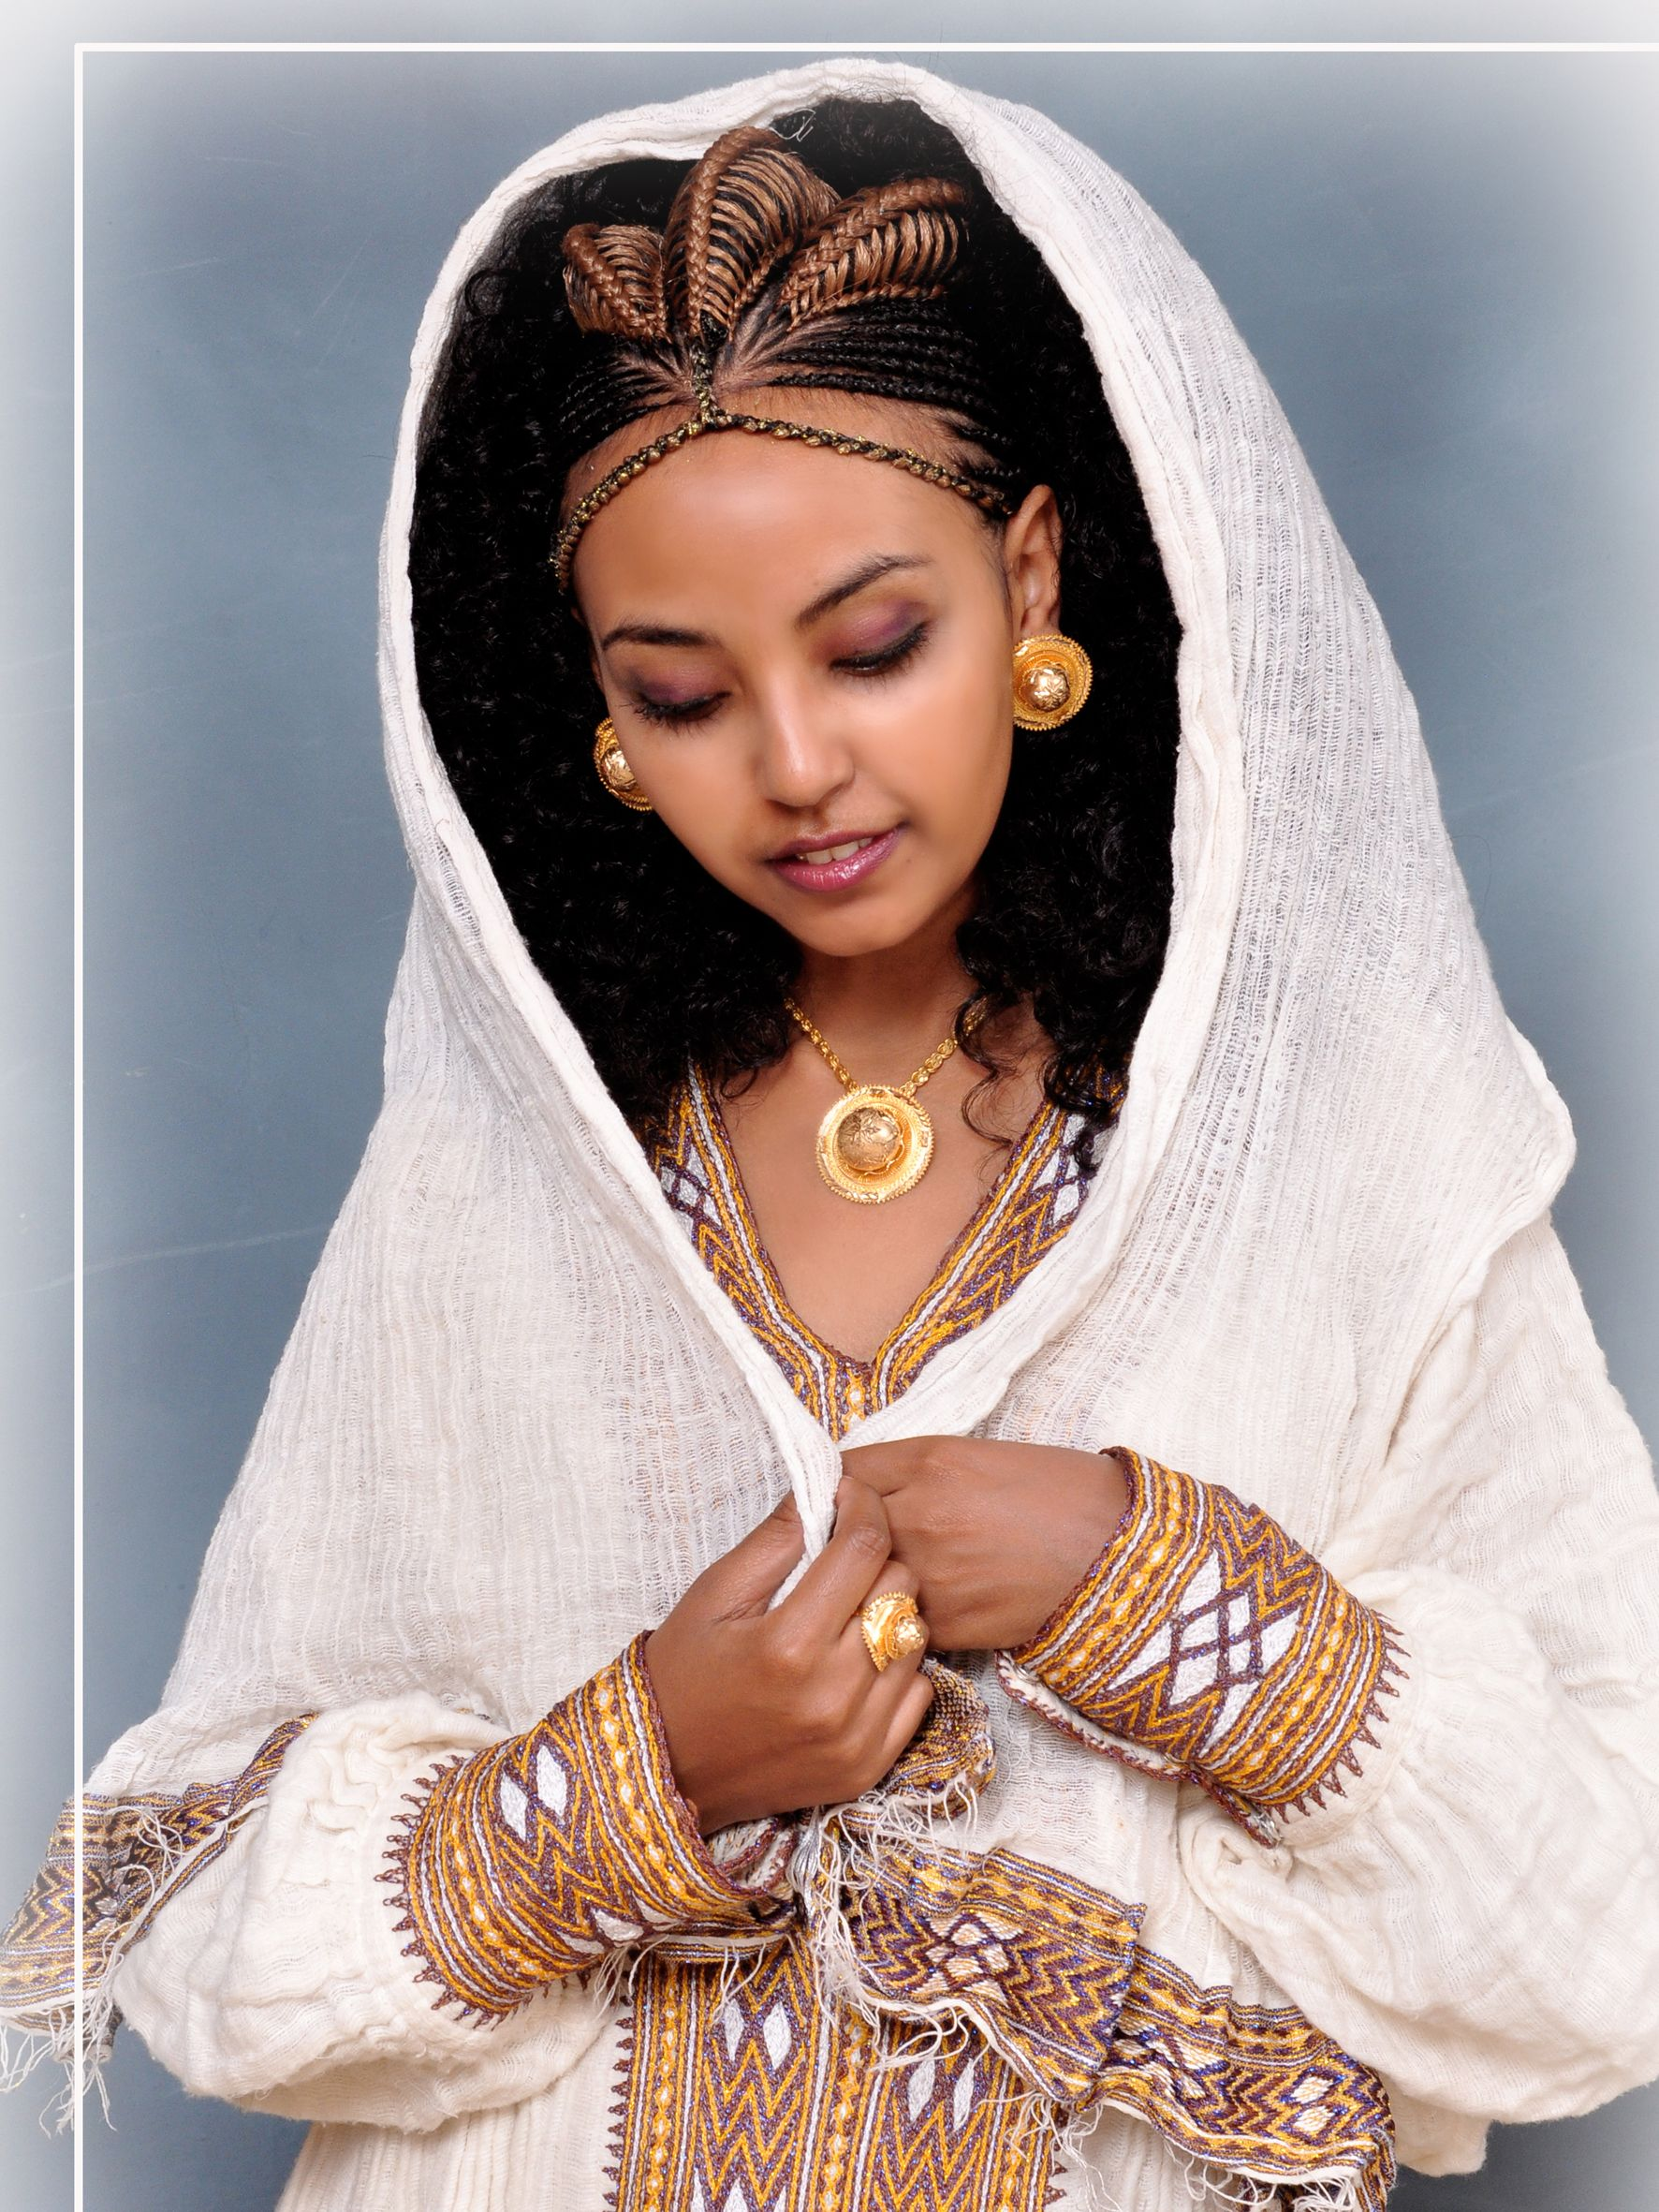 Pin By Ruhama Chernet On Habesha Bride Pinterest Ethiopia Africans And Africa